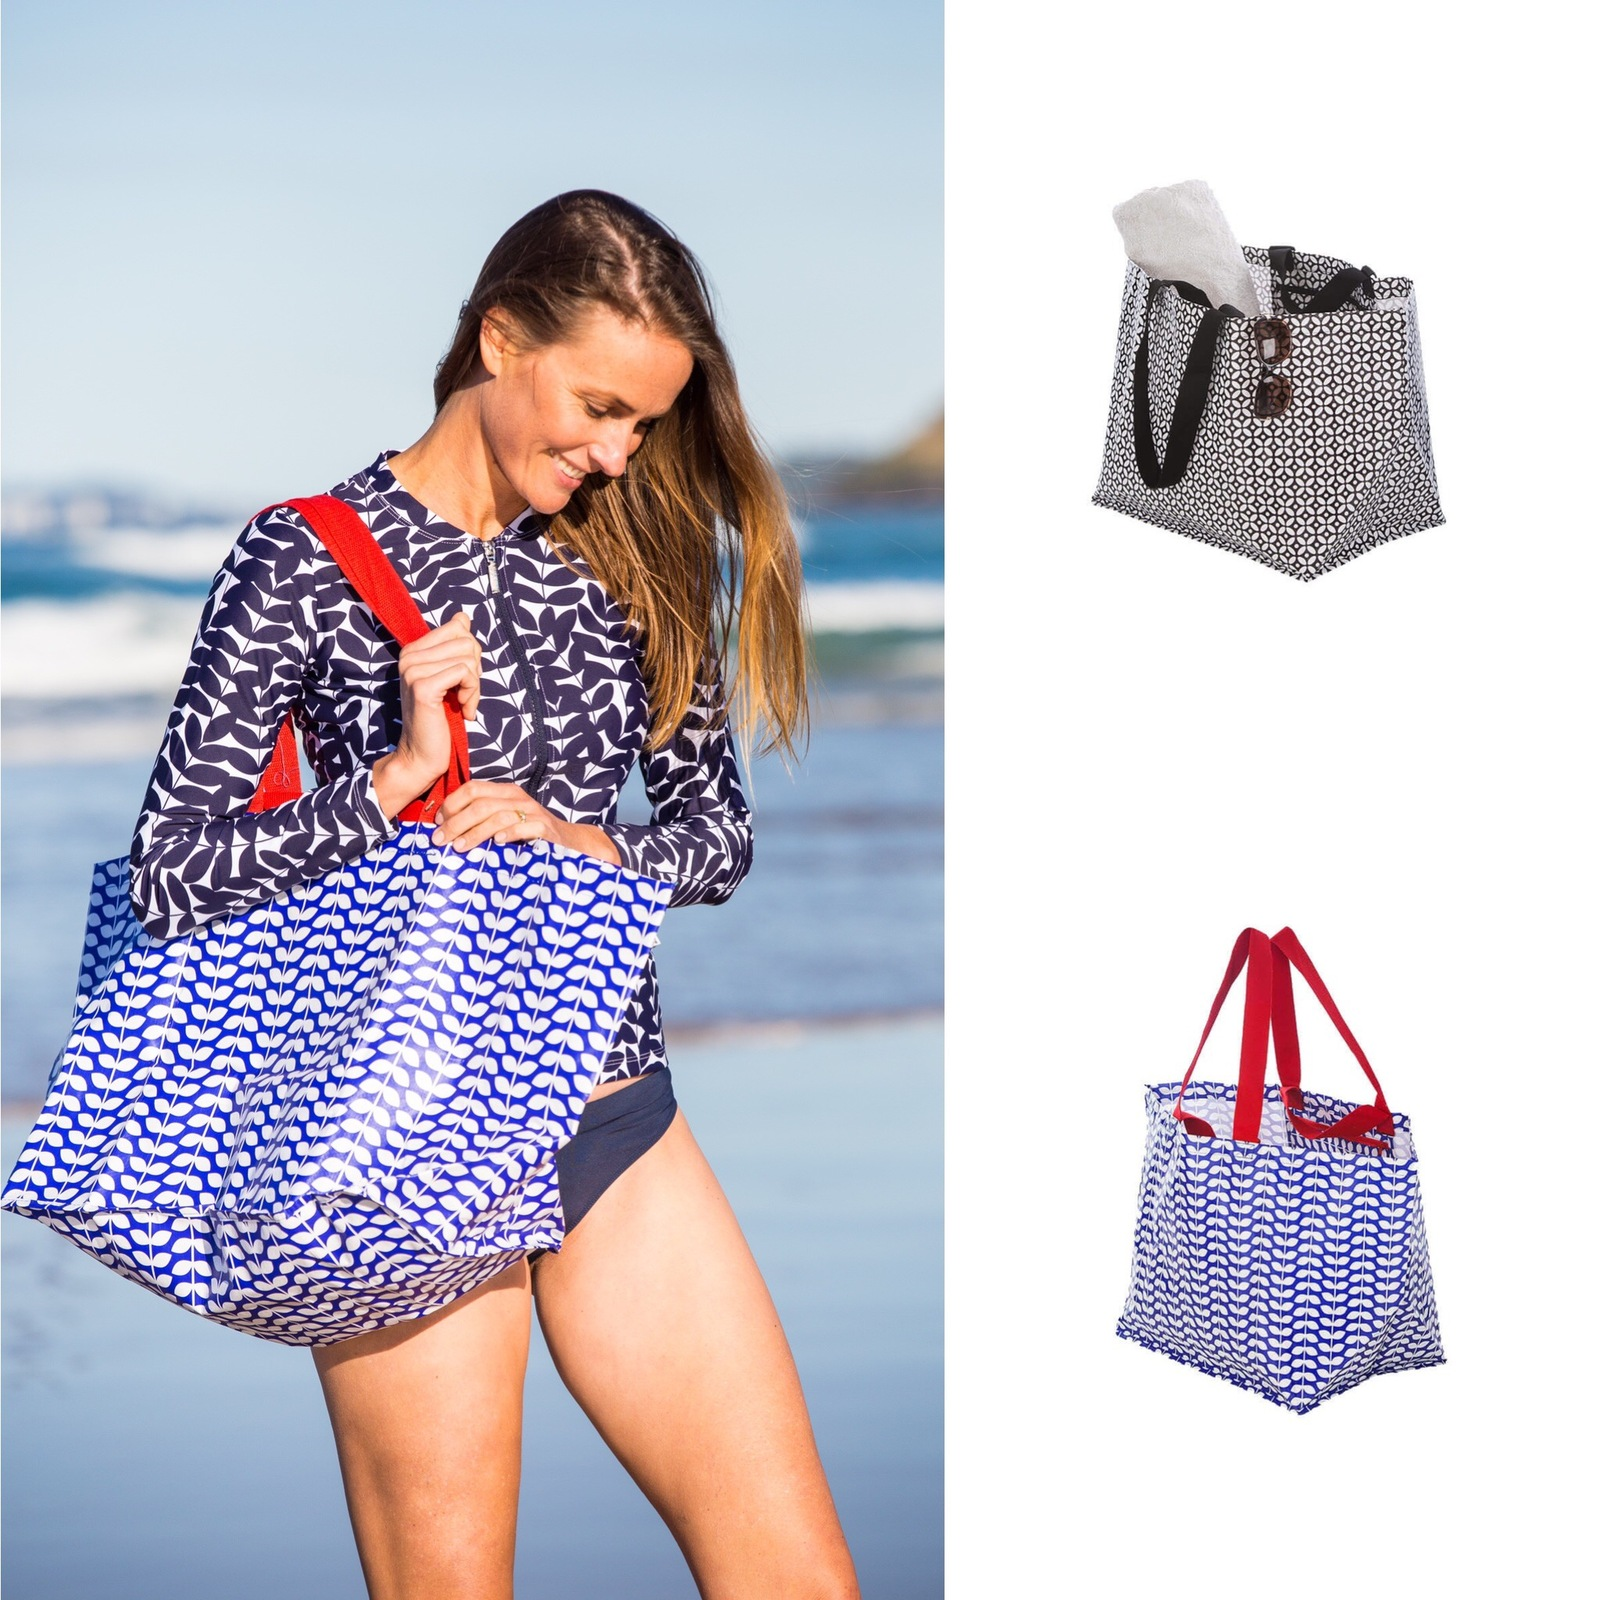 Blue Acacia Long Sleeve and Beach Bag Bundle